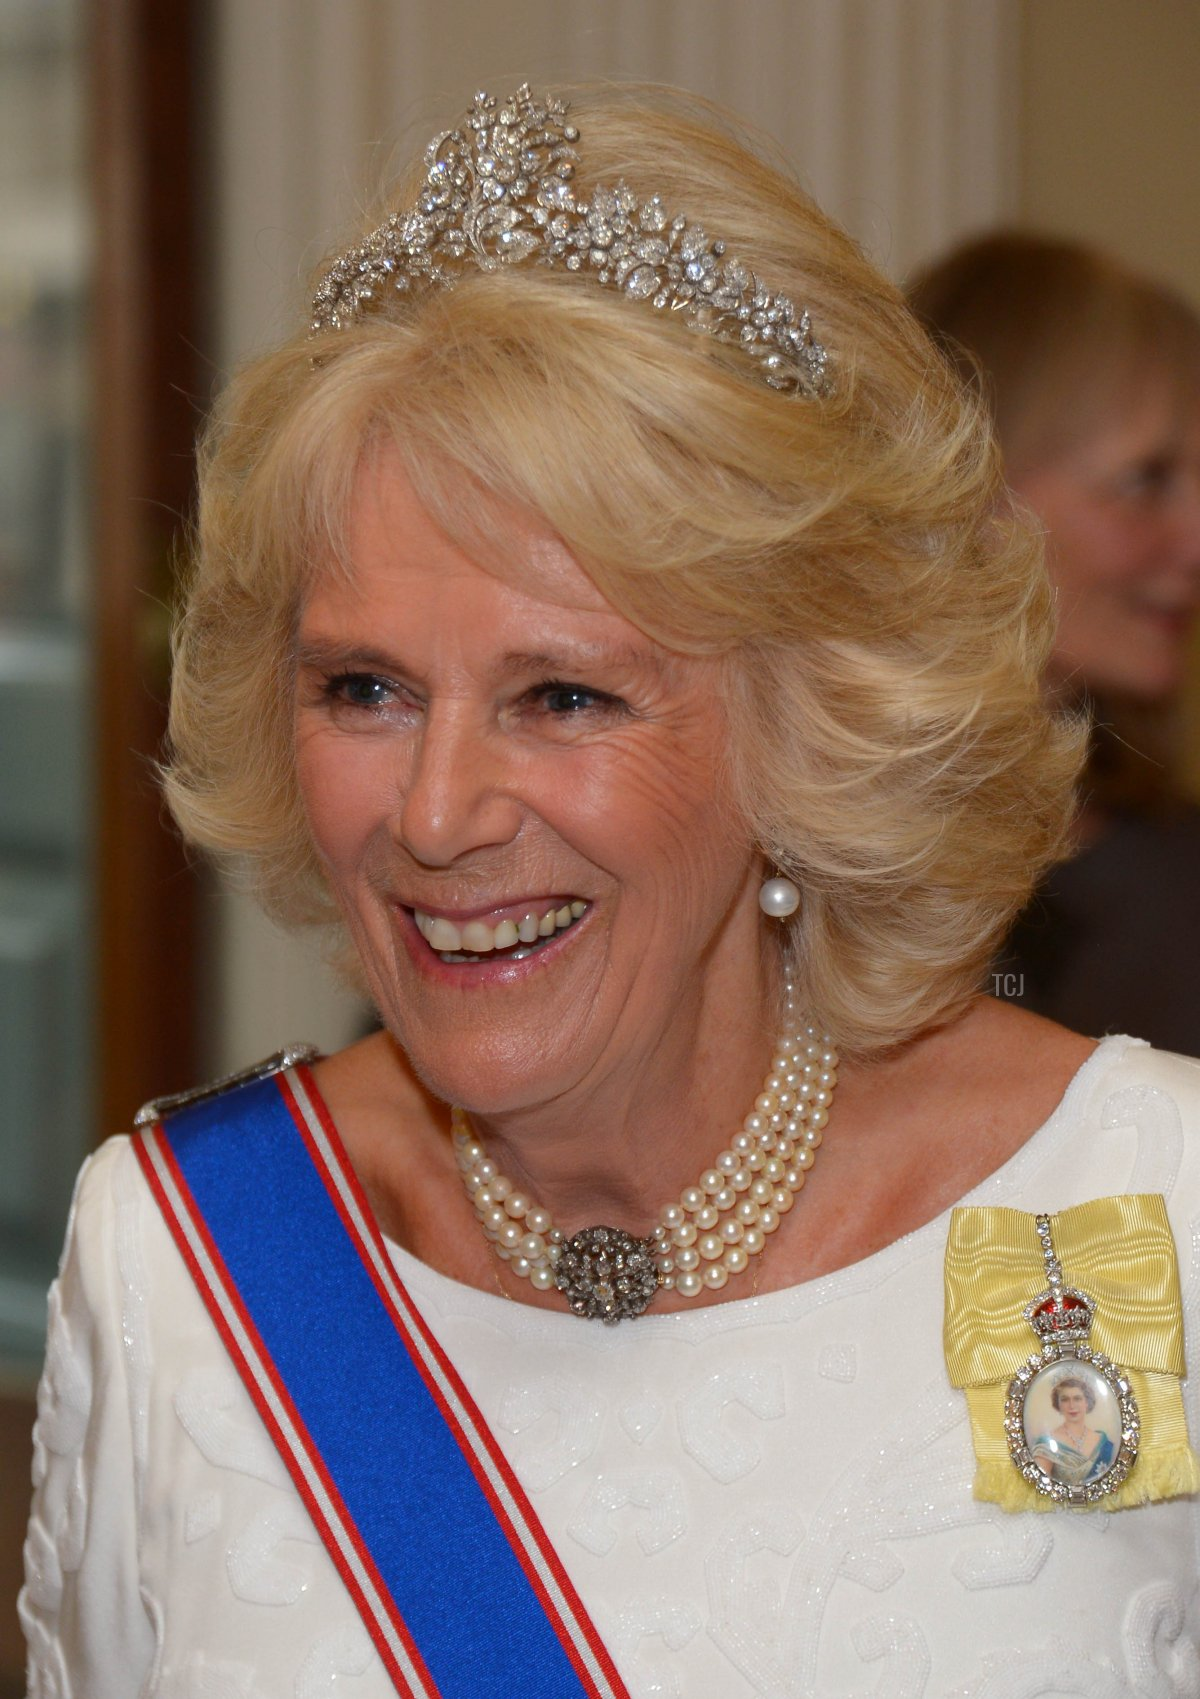 Camilla, Duchess Of Cornwall attends the Royal Academy Annual Dinner to celebrate the Summer Exhibition, opening to the public on 8 June, at Royal Academy of Arts on June 2, 2015 in London, England